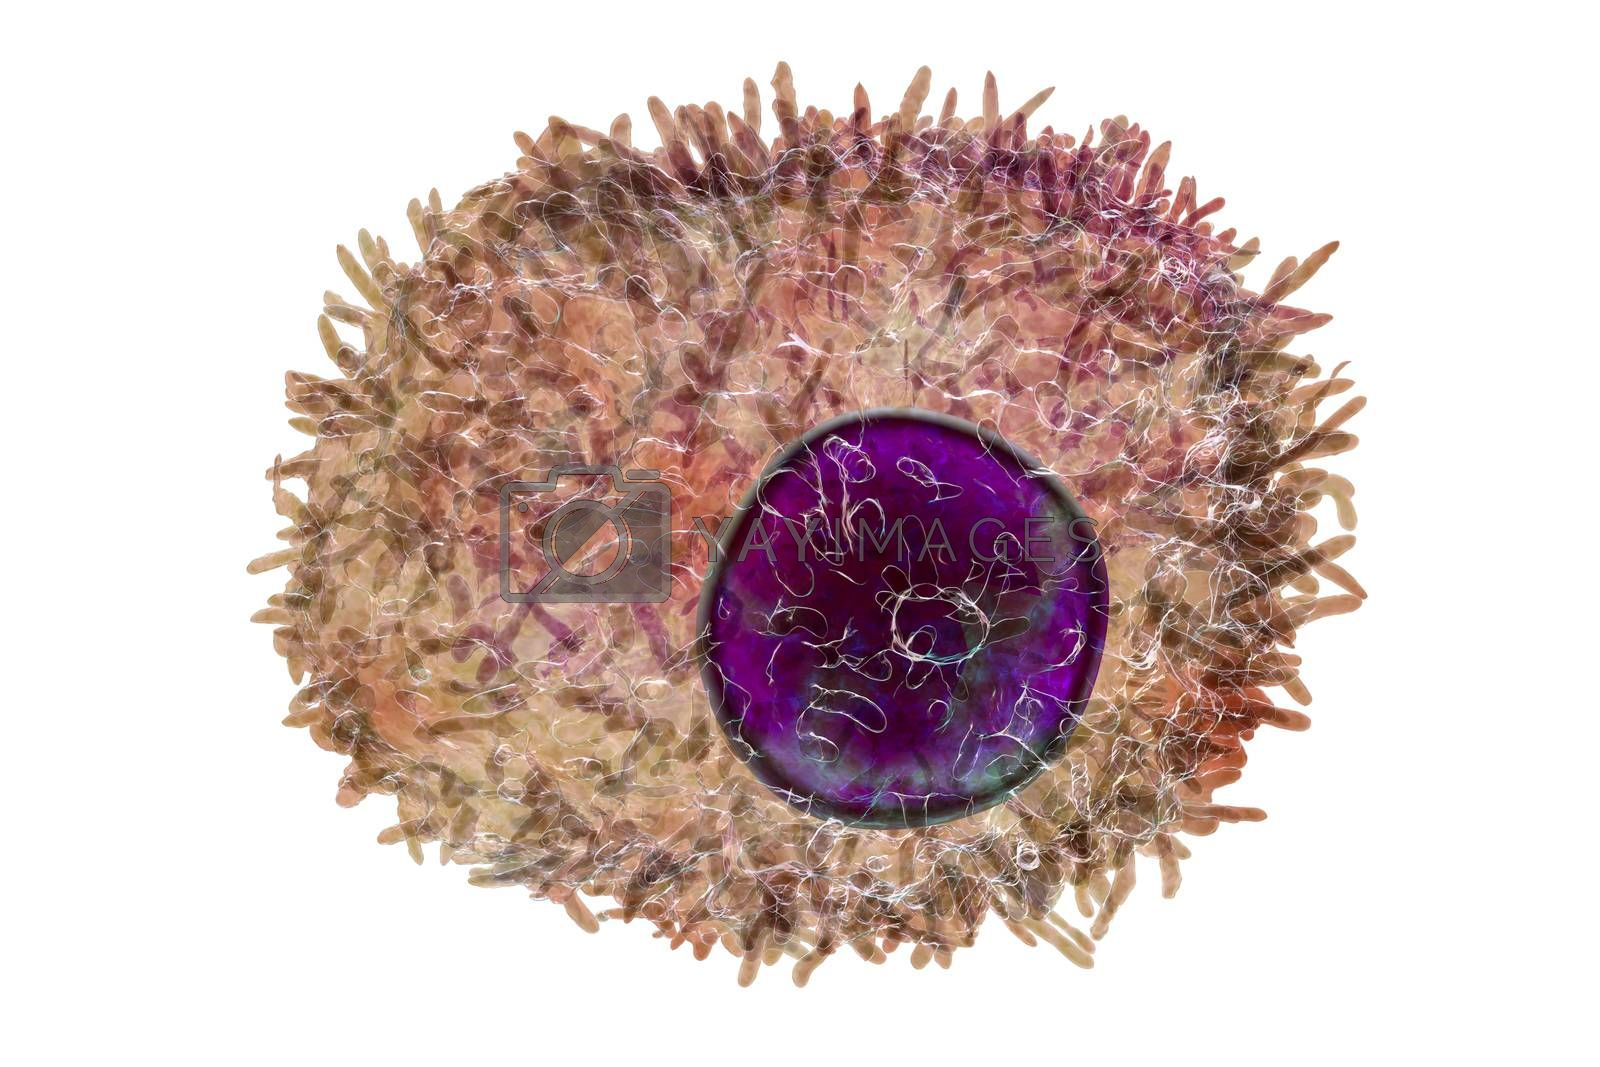 Plasma cell, a white blood cell, differenciated from B lymphocyte that secretes antibodies, 3D illustration